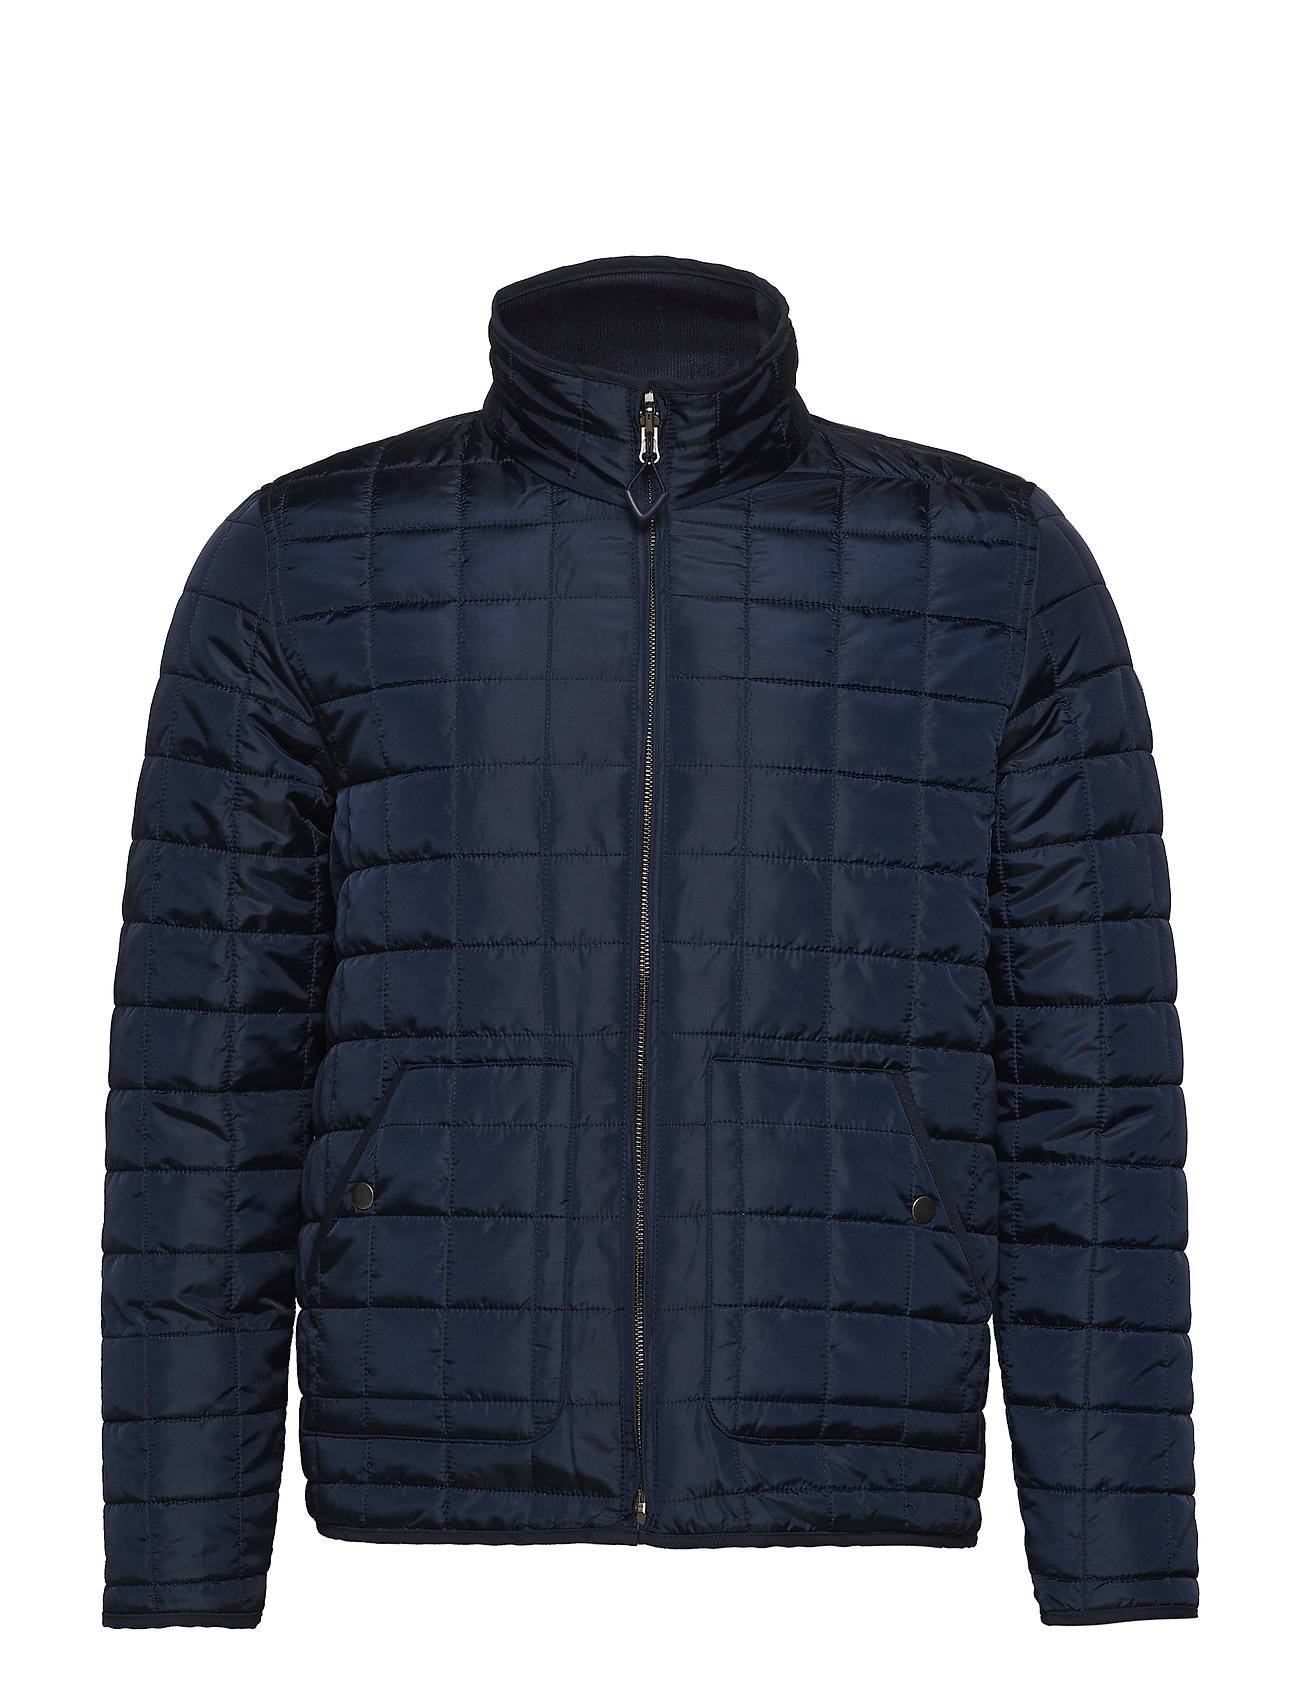 Knowledge Cotton Apparel Reversible quilted jacket - GRS/Veg - TOTAL ECLIPSE